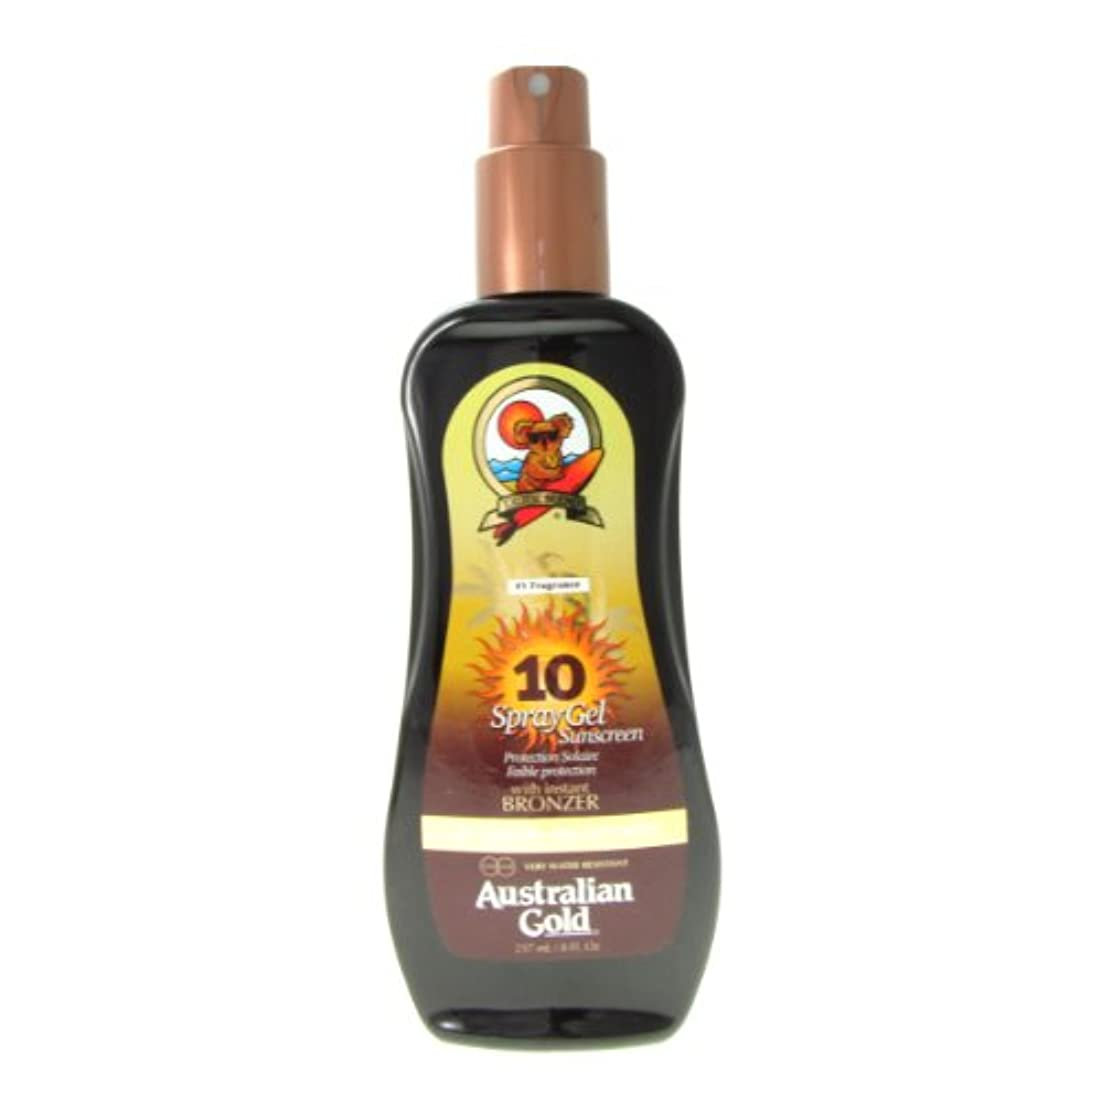 共和国カロリー酔うAustralian Gold Spray Gel Spf10 Instant Bronzer 237ml [並行輸入品]